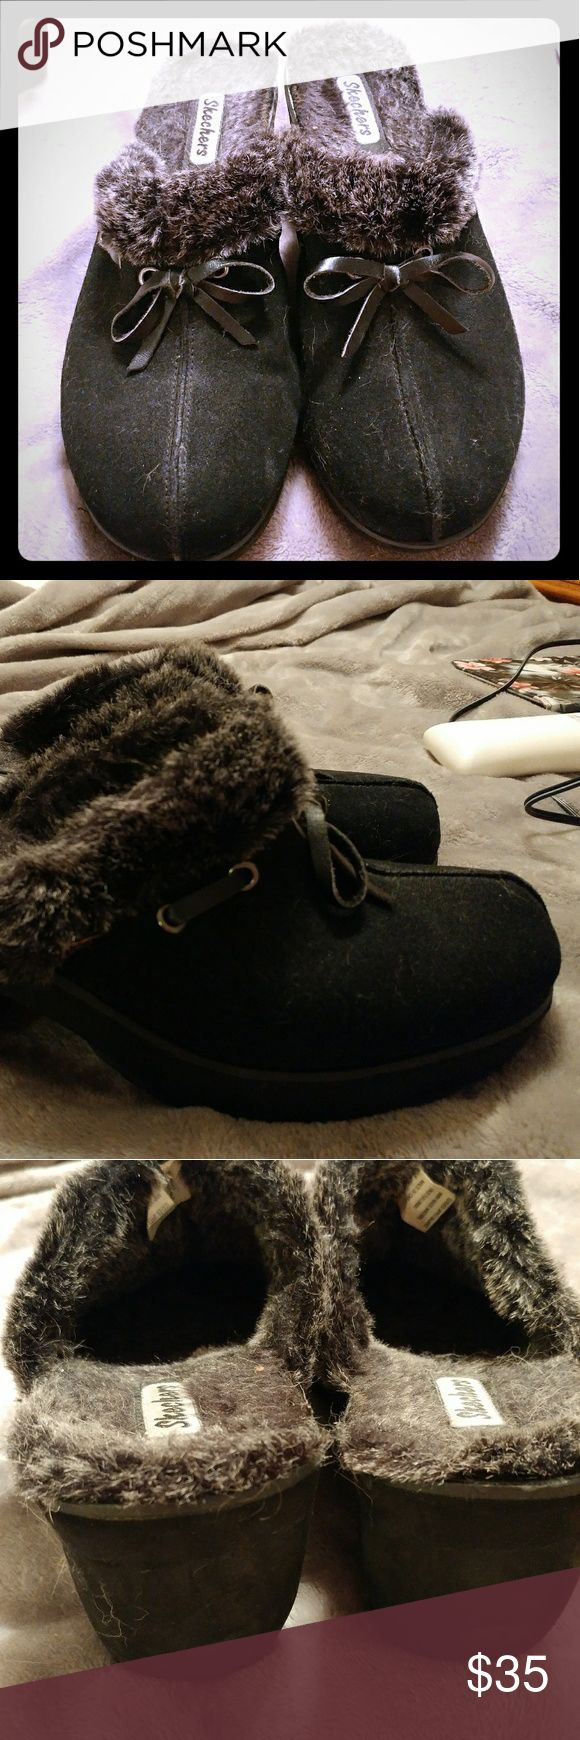 Black Skechers Clogs Cute, black, Skechers clogs with salt-n-paper colored faux-fur lining. Very comfy! Size 11. Worn only once and just wasting away in my closet. Smoke free home. Skechers Shoes Mules & Clogs